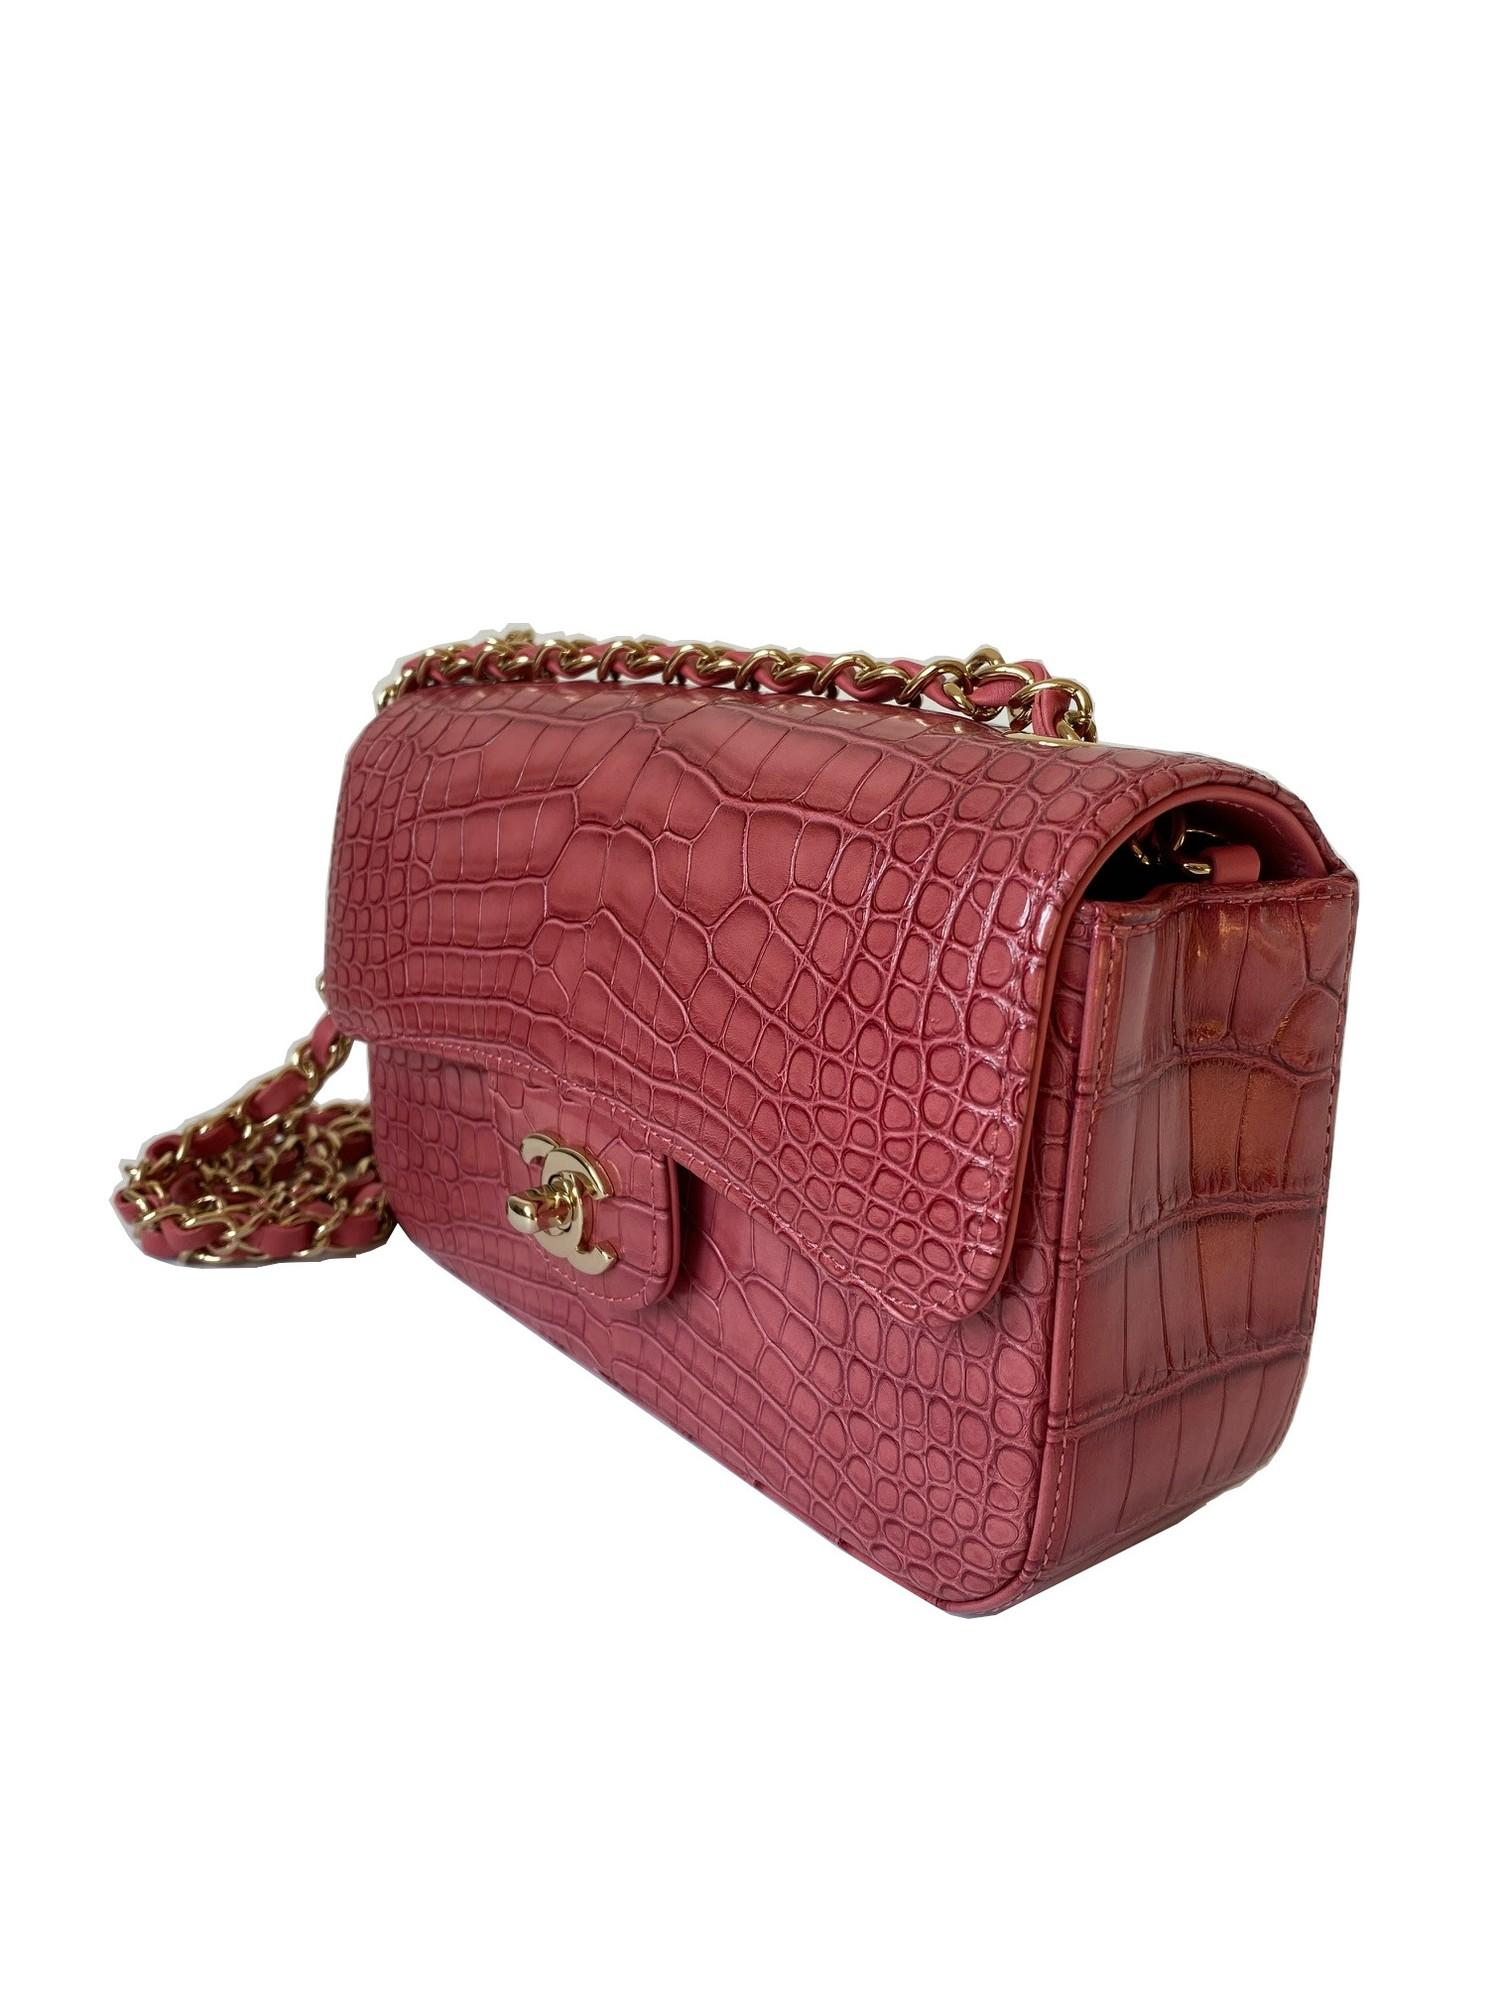 A Chanel Classic Flap in Dusky Pink Crocodile leather with Gold Hardware is instantly recognizable - Image 5 of 5